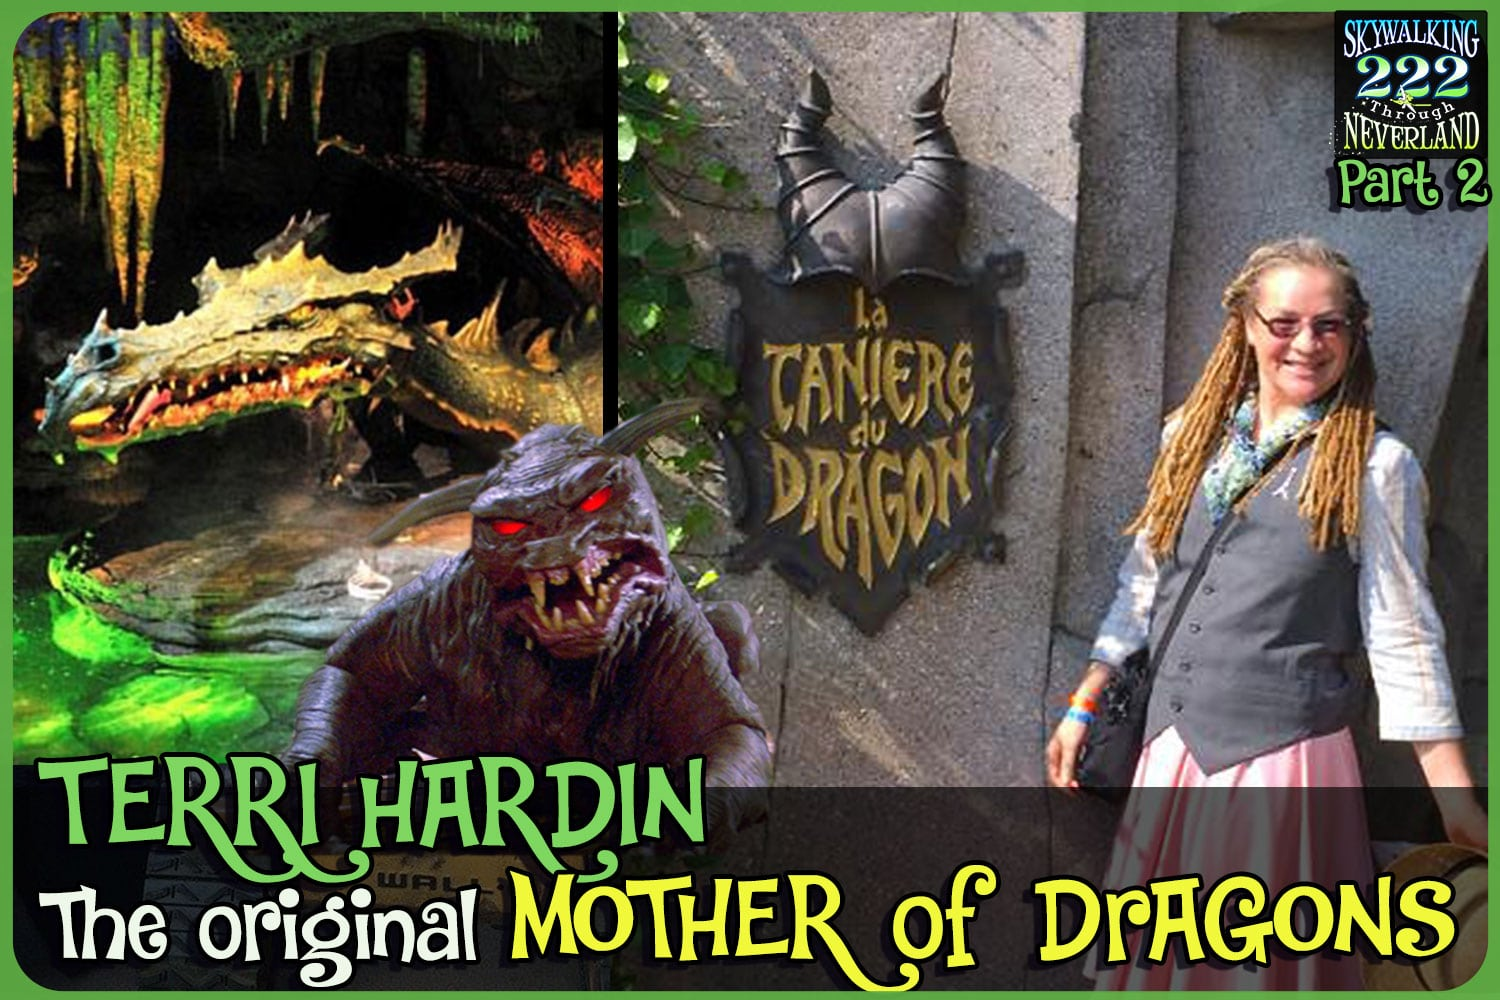 Skywalking Through Neverland 222: Terri Hardin - Original Mother of Dragons - Part 2